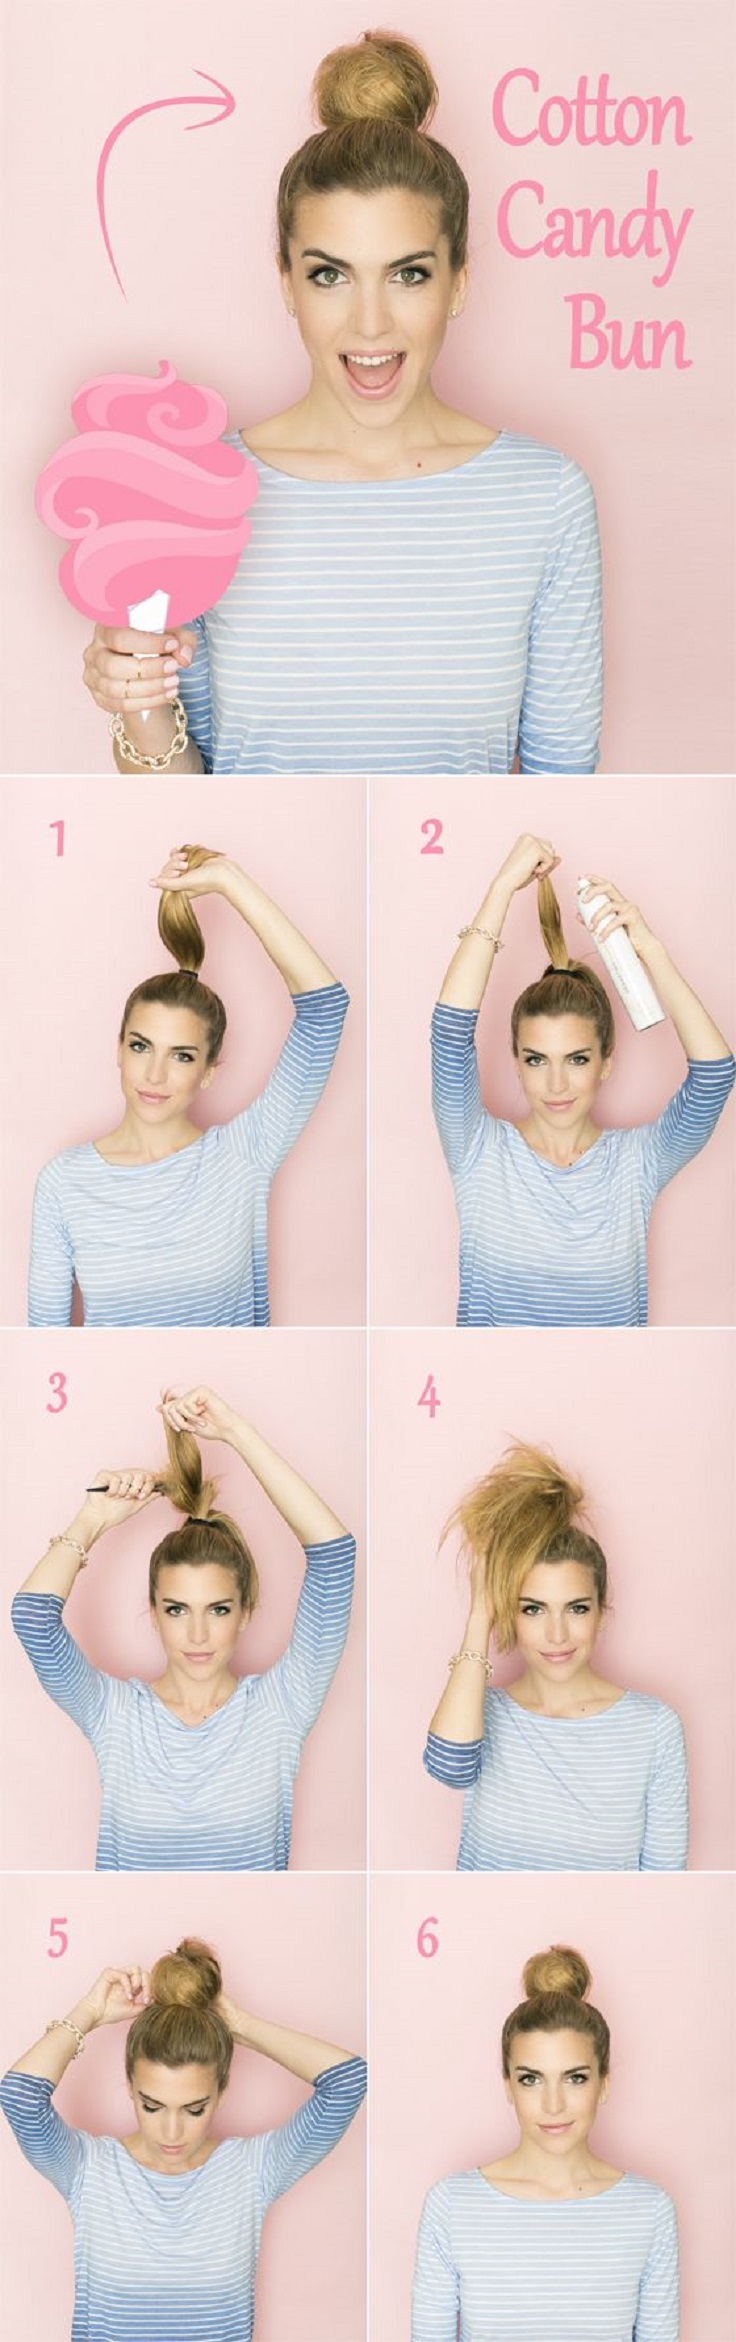 Cotton-Candy-Bun-Tutorial